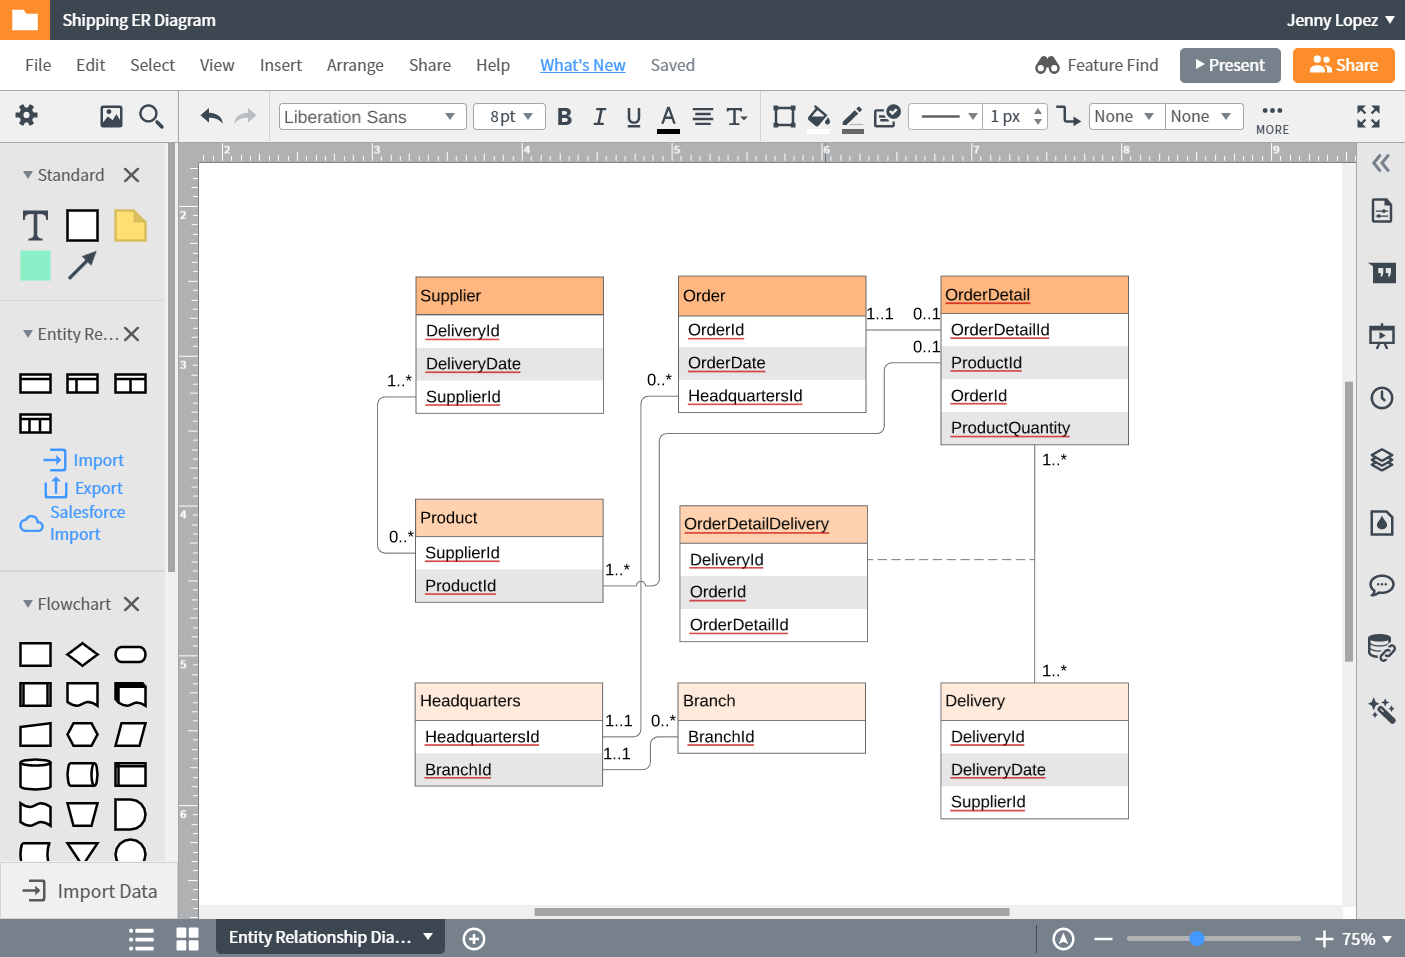 Er Diagram (Erd) Tool | Lucidchart intended for Er Diagram Program